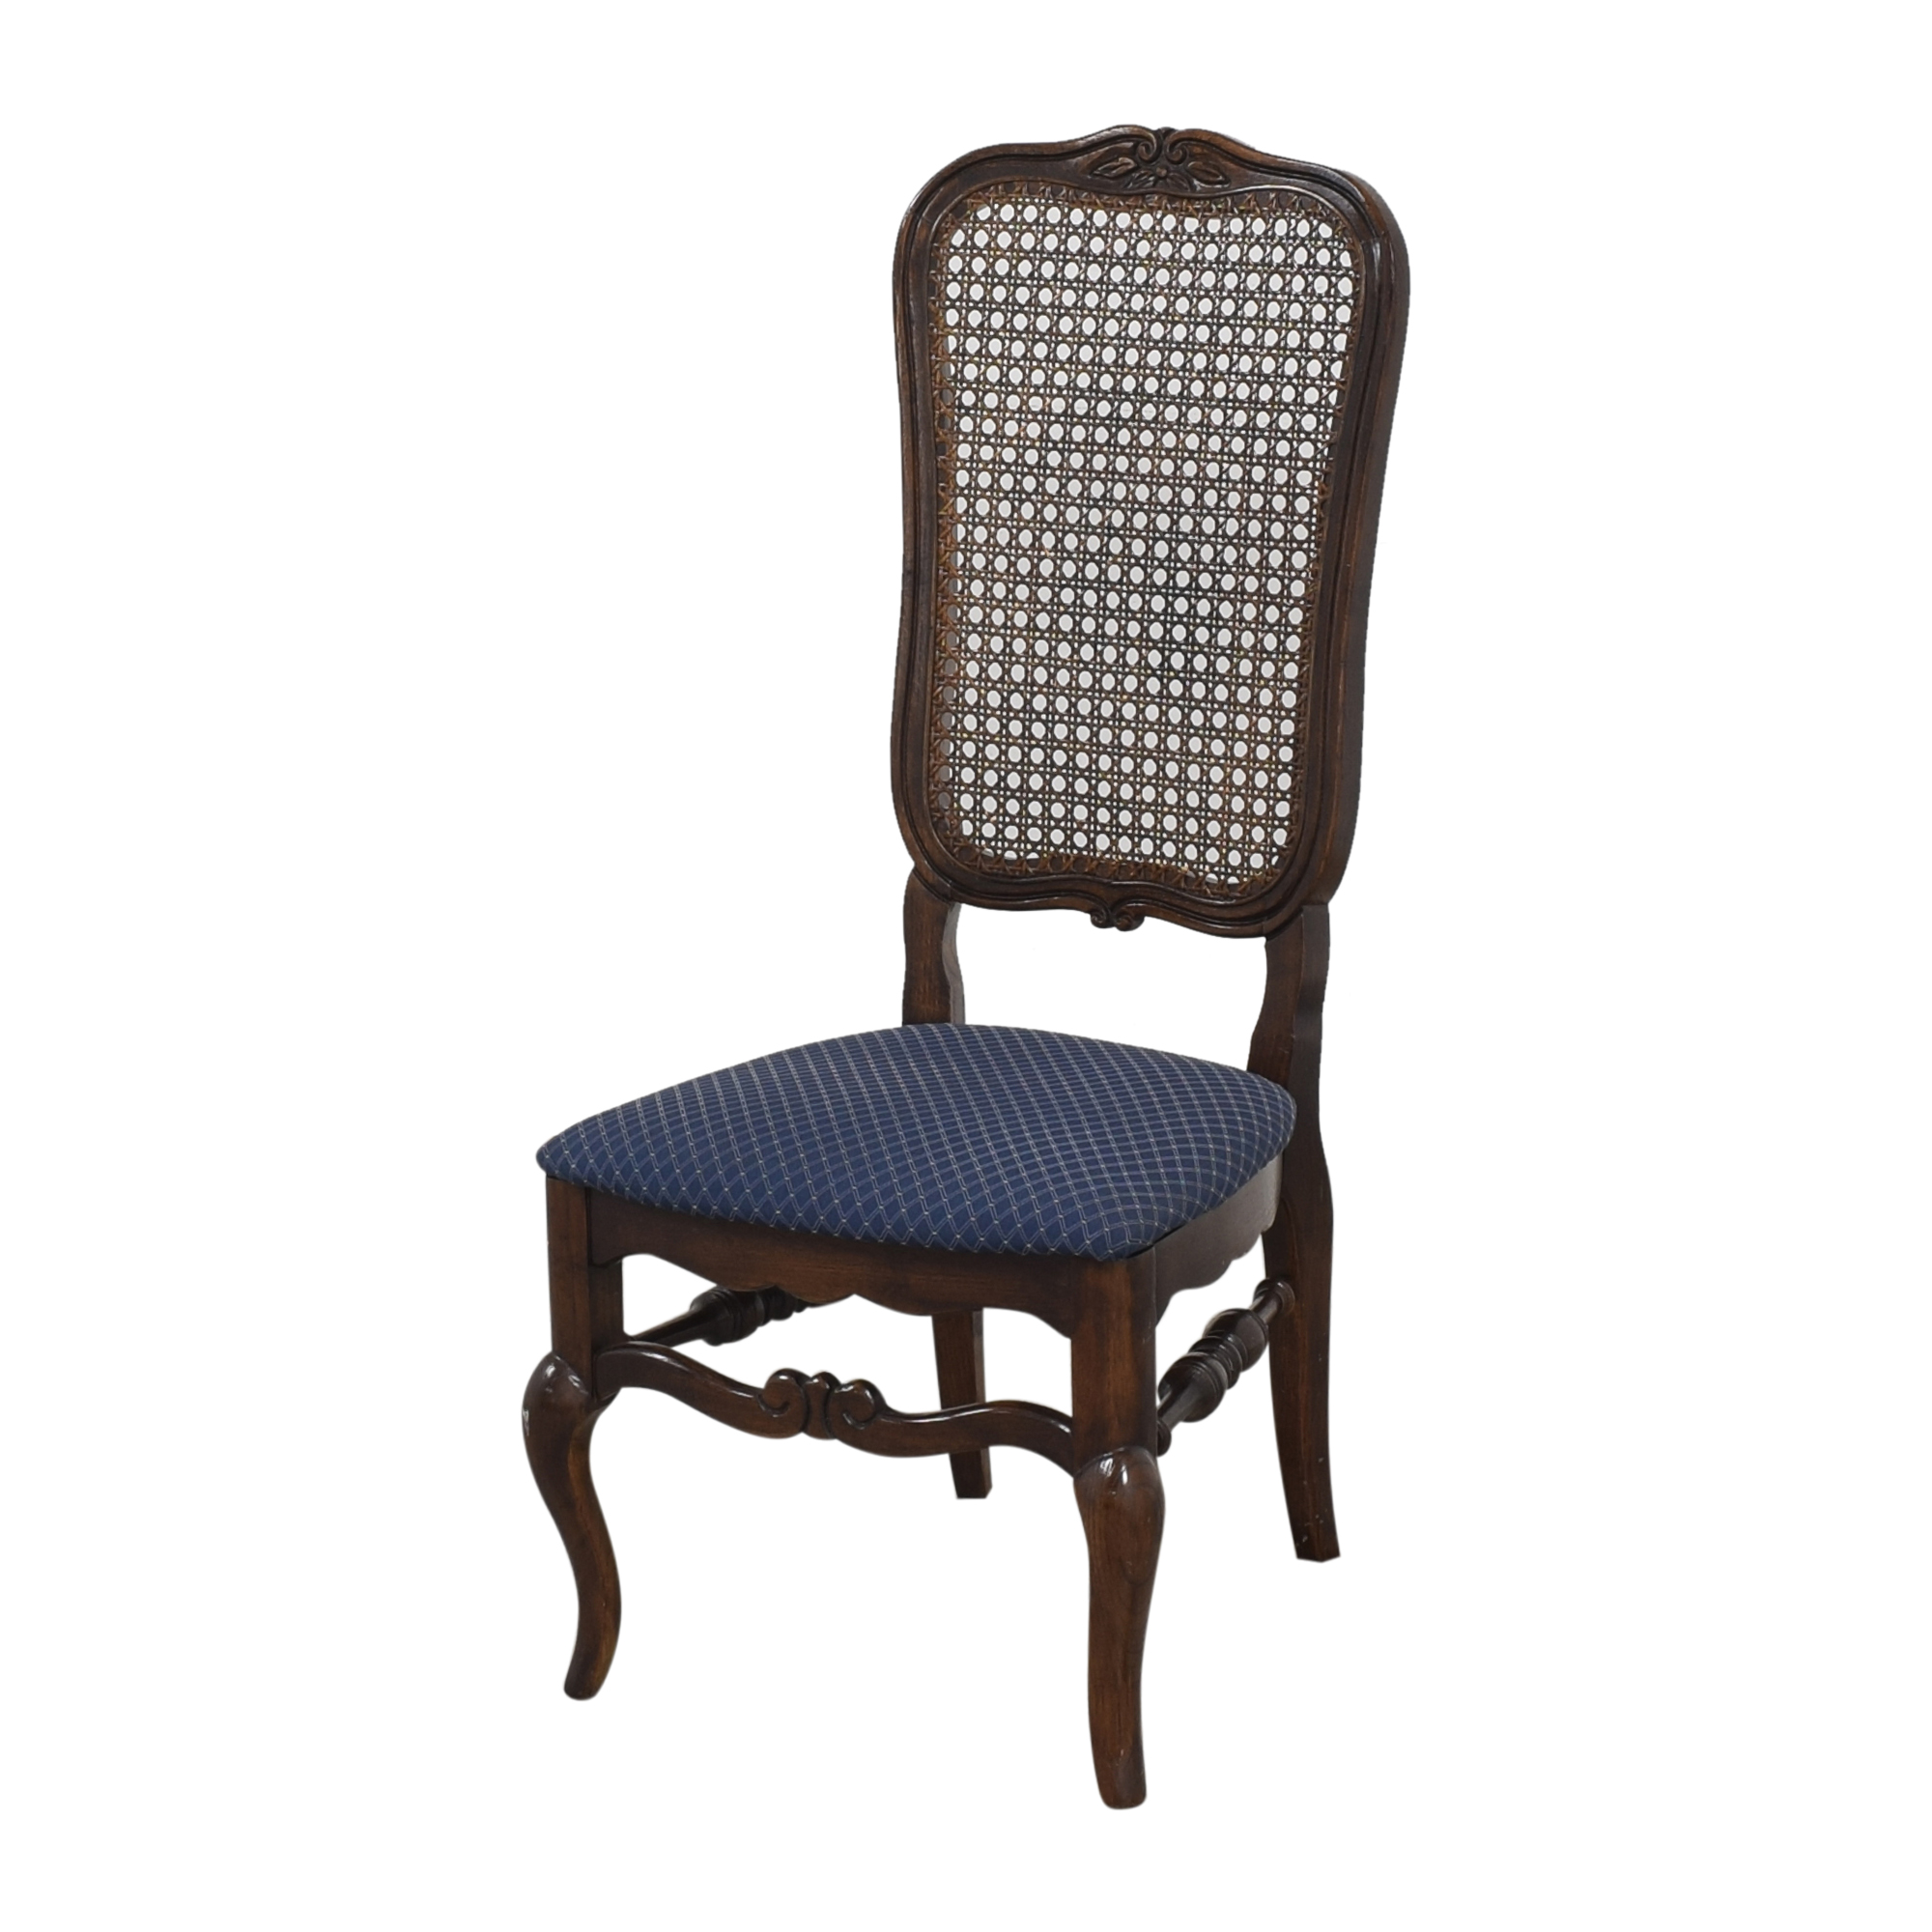 shop Thomasville Upholstered Dining Chairs Thomasville Chairs